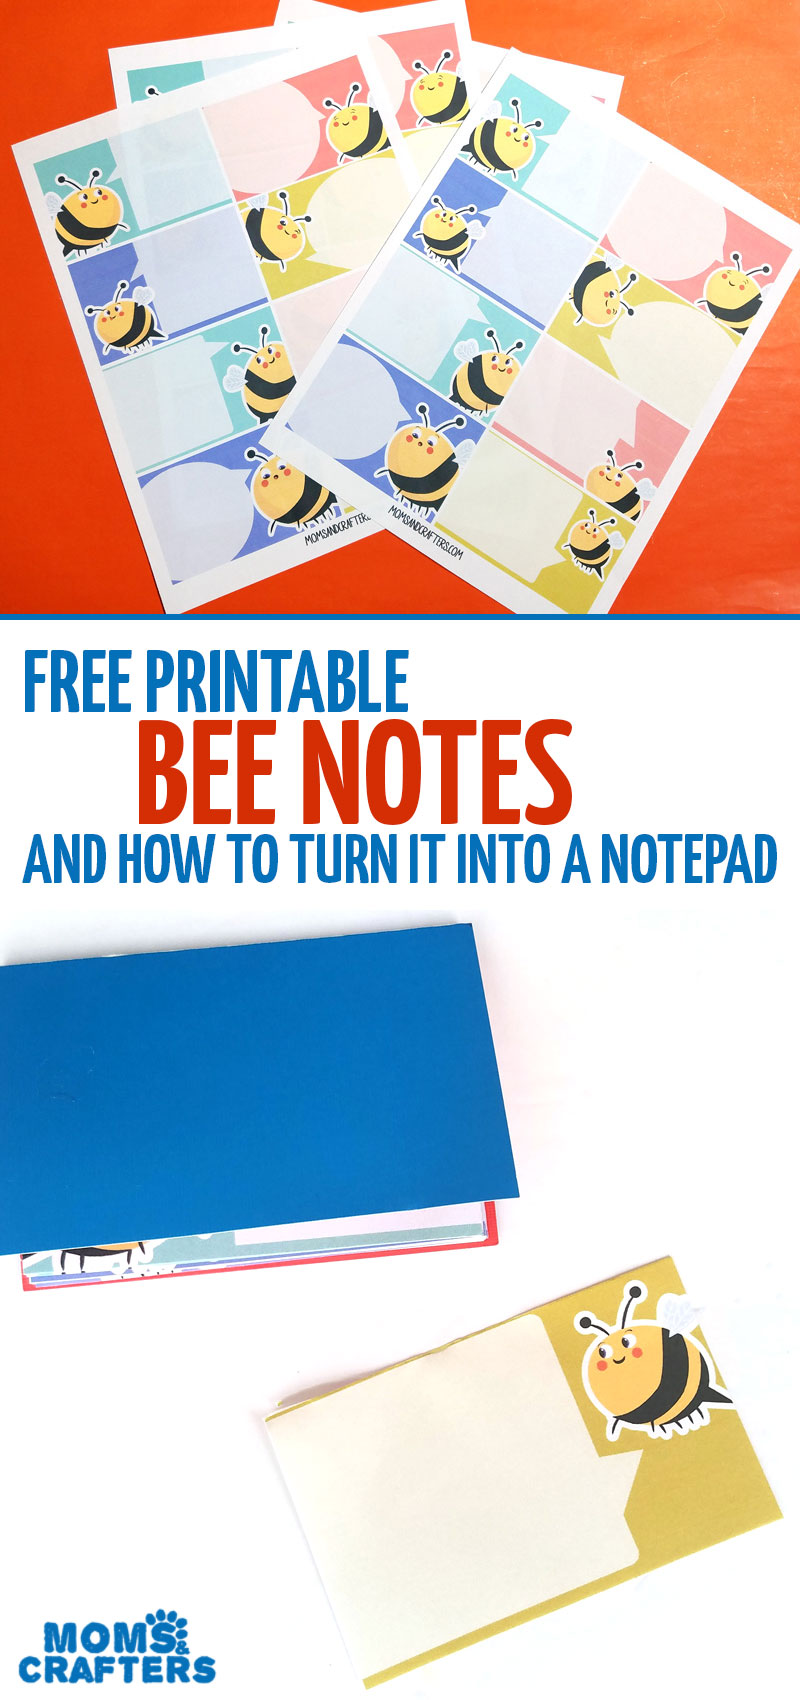 Click to download your free printable lunch box notes with adorable friendly bees on them! Learn how to turn them into a DIY notepad so you have them conveniently at your fingertips.